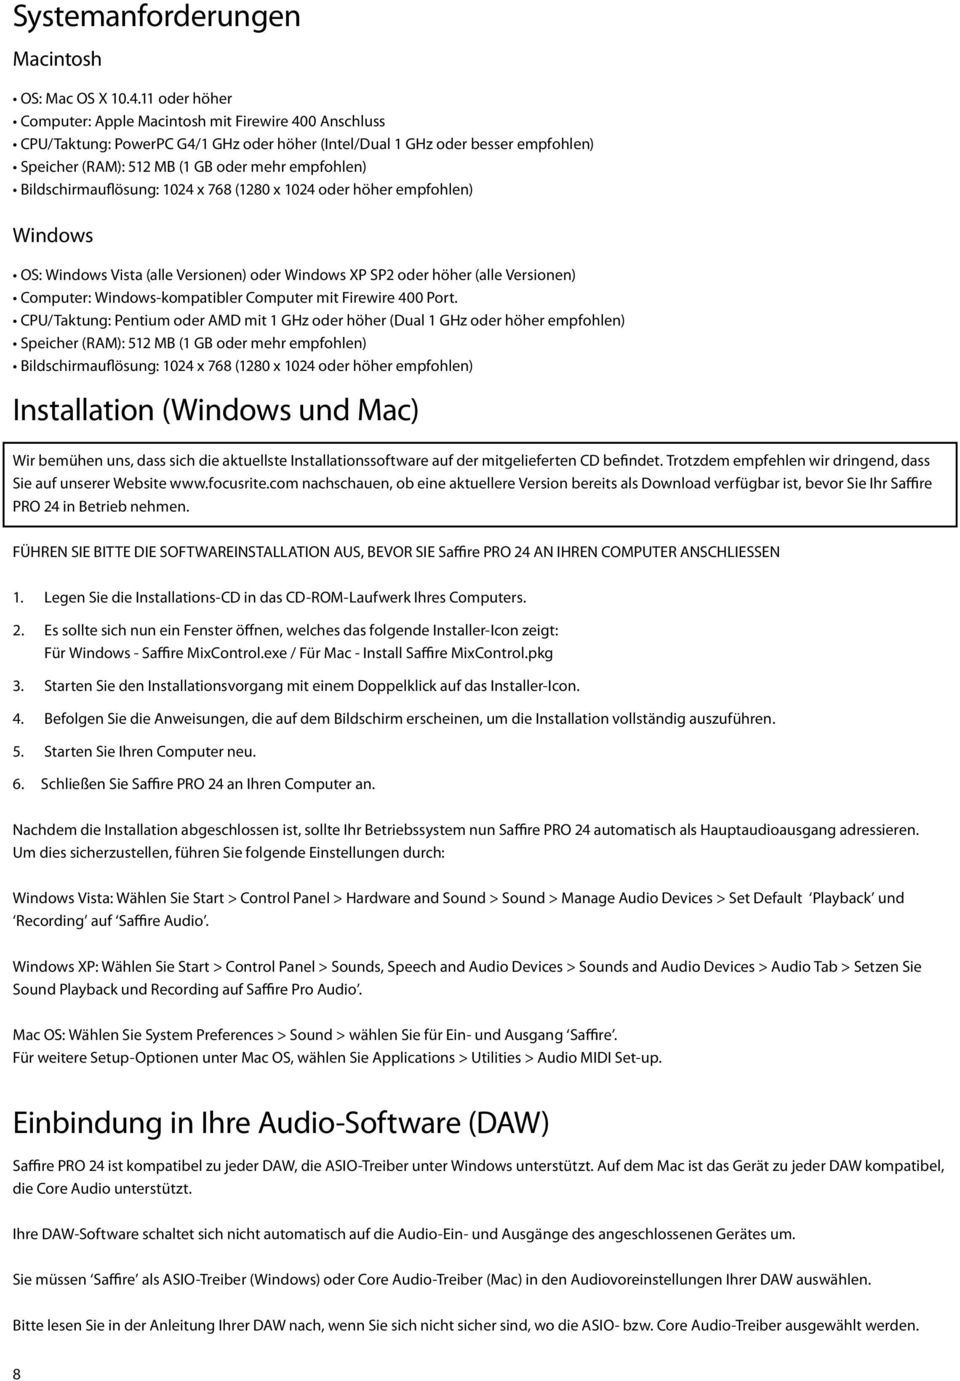 Bildschirmauflösung: 1024 x 768 (1280 x 1024 oder höher empfohlen) Windows OS: Windows Vista (alle Versionen) oder Windows XP SP2 oder höher (alle Versionen) Computer: Windows-kompatibler Computer